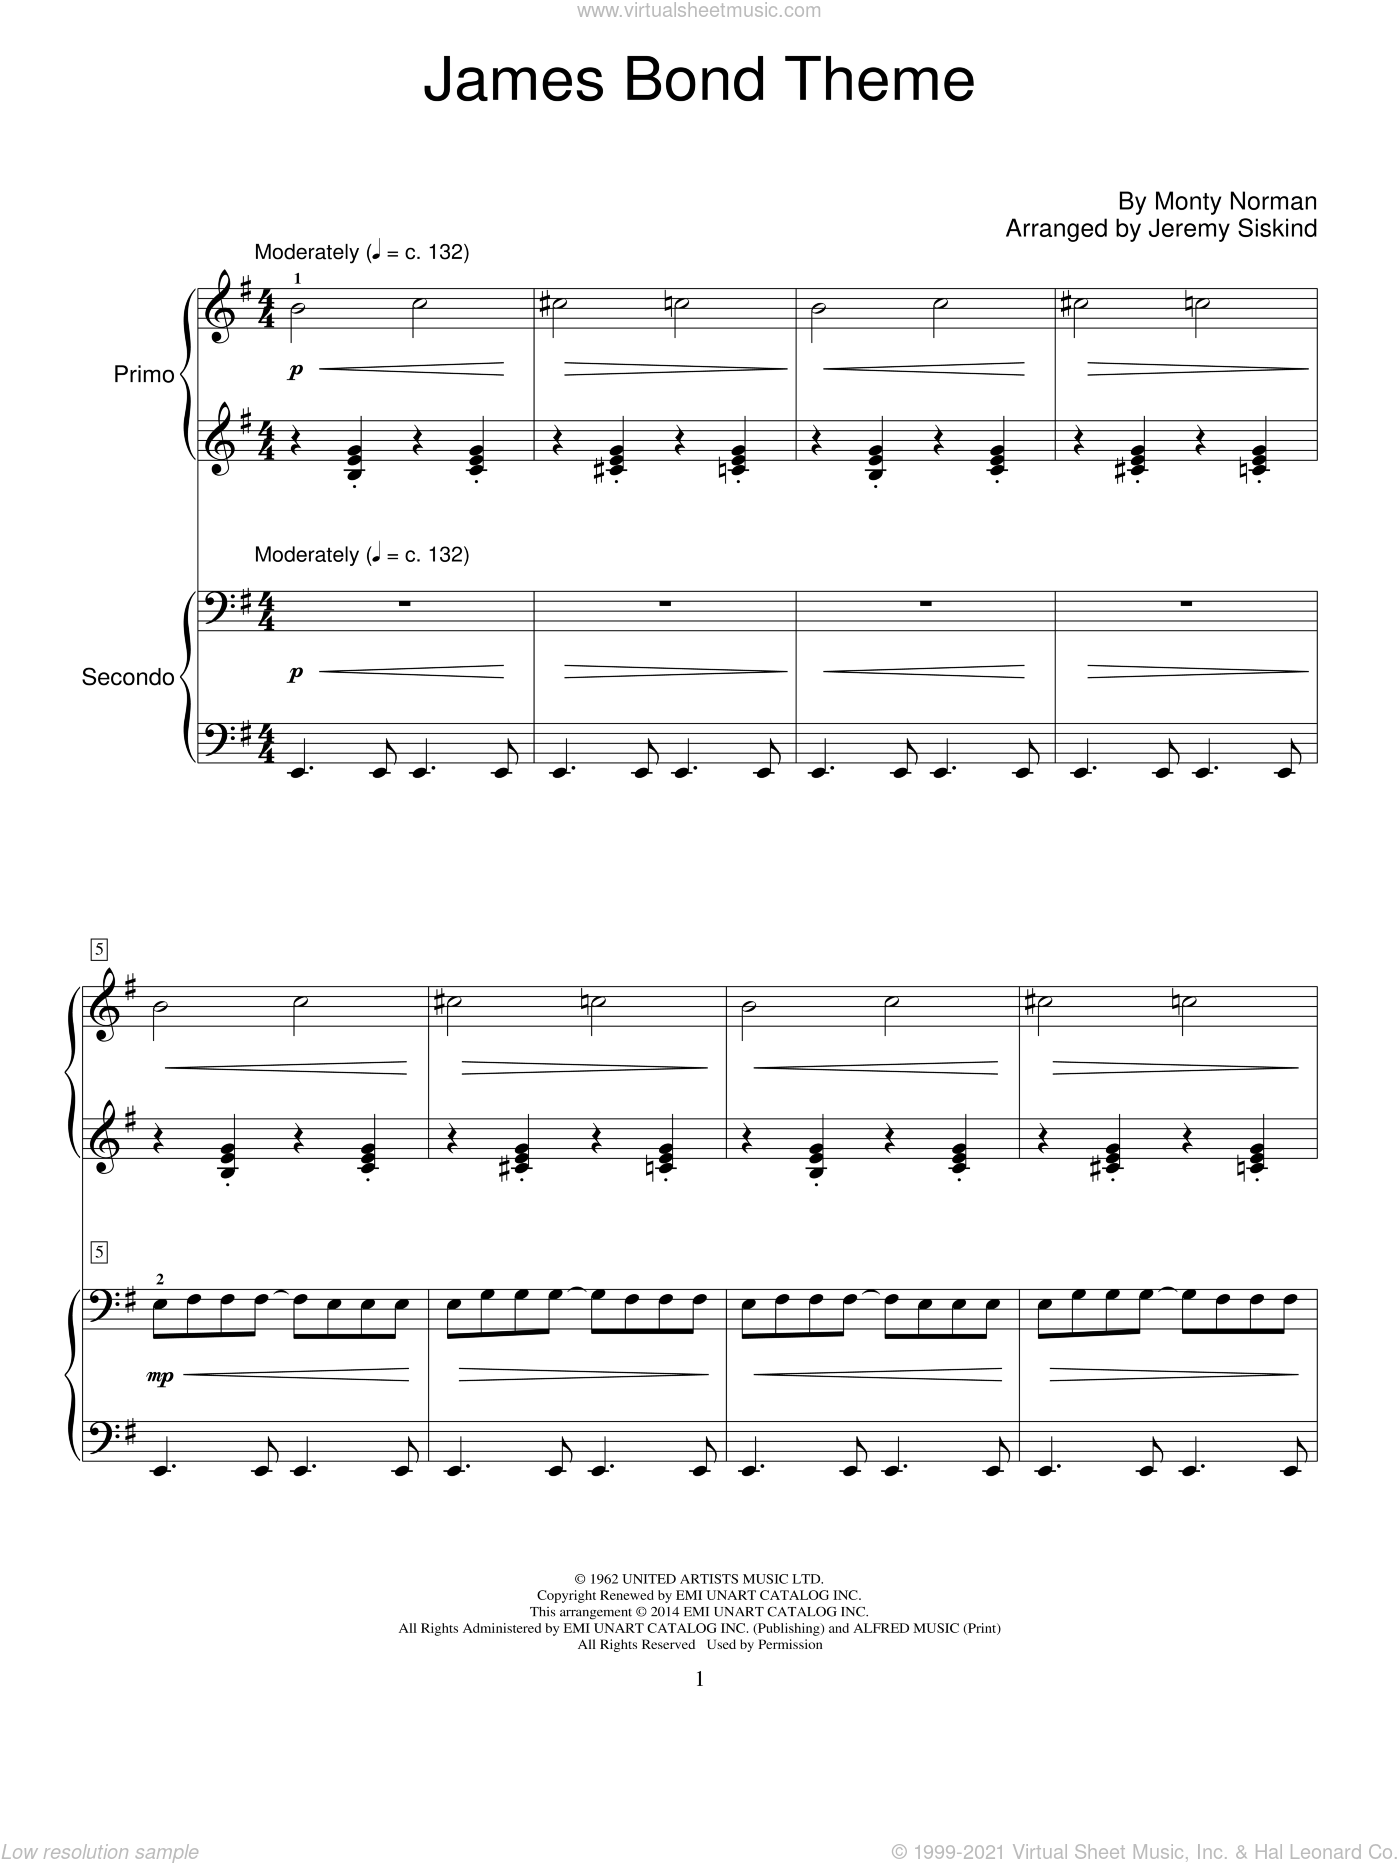 James Bond Theme sheet music for piano four hands (duets) by Monty Norman and Jeremy Siskind, intermediate piano four hands. Score Image Preview.